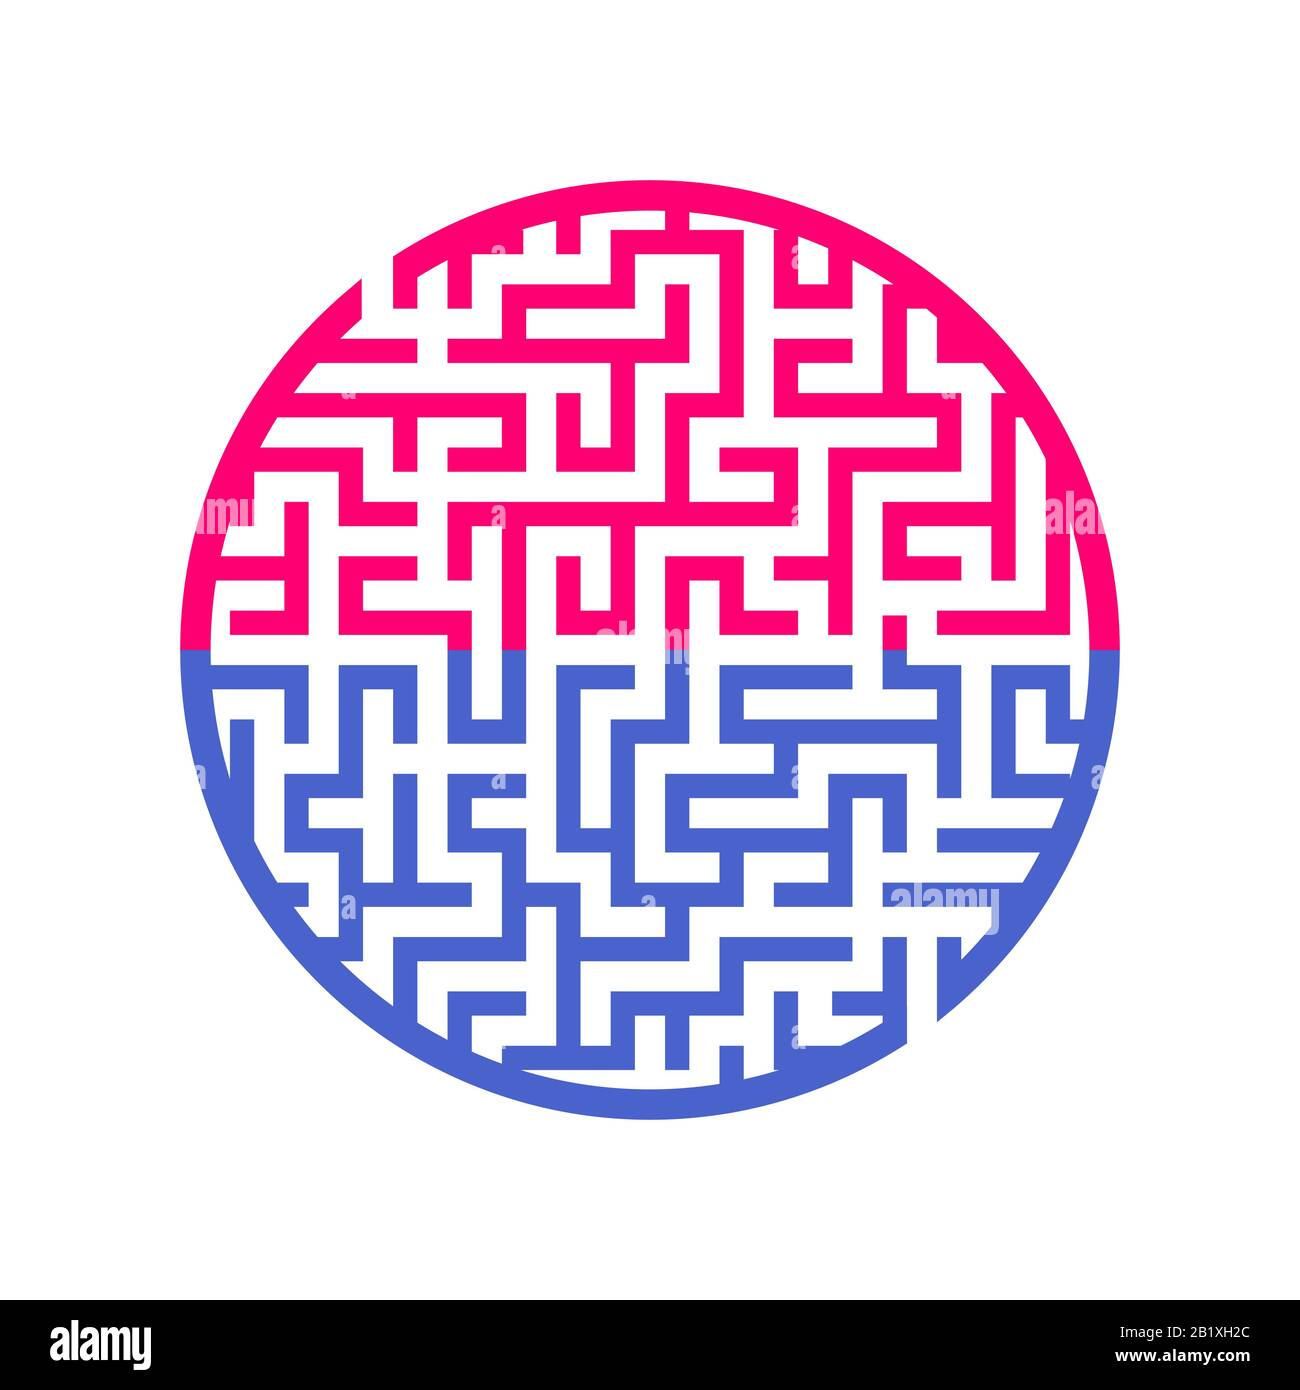 Color Round Maze Painted In Different Colors Game For Kids And Adults Puzzle For Children Labyrinth Conundrum Flat Vector Illustration Isolated O Stock Vector Image Art Alamy